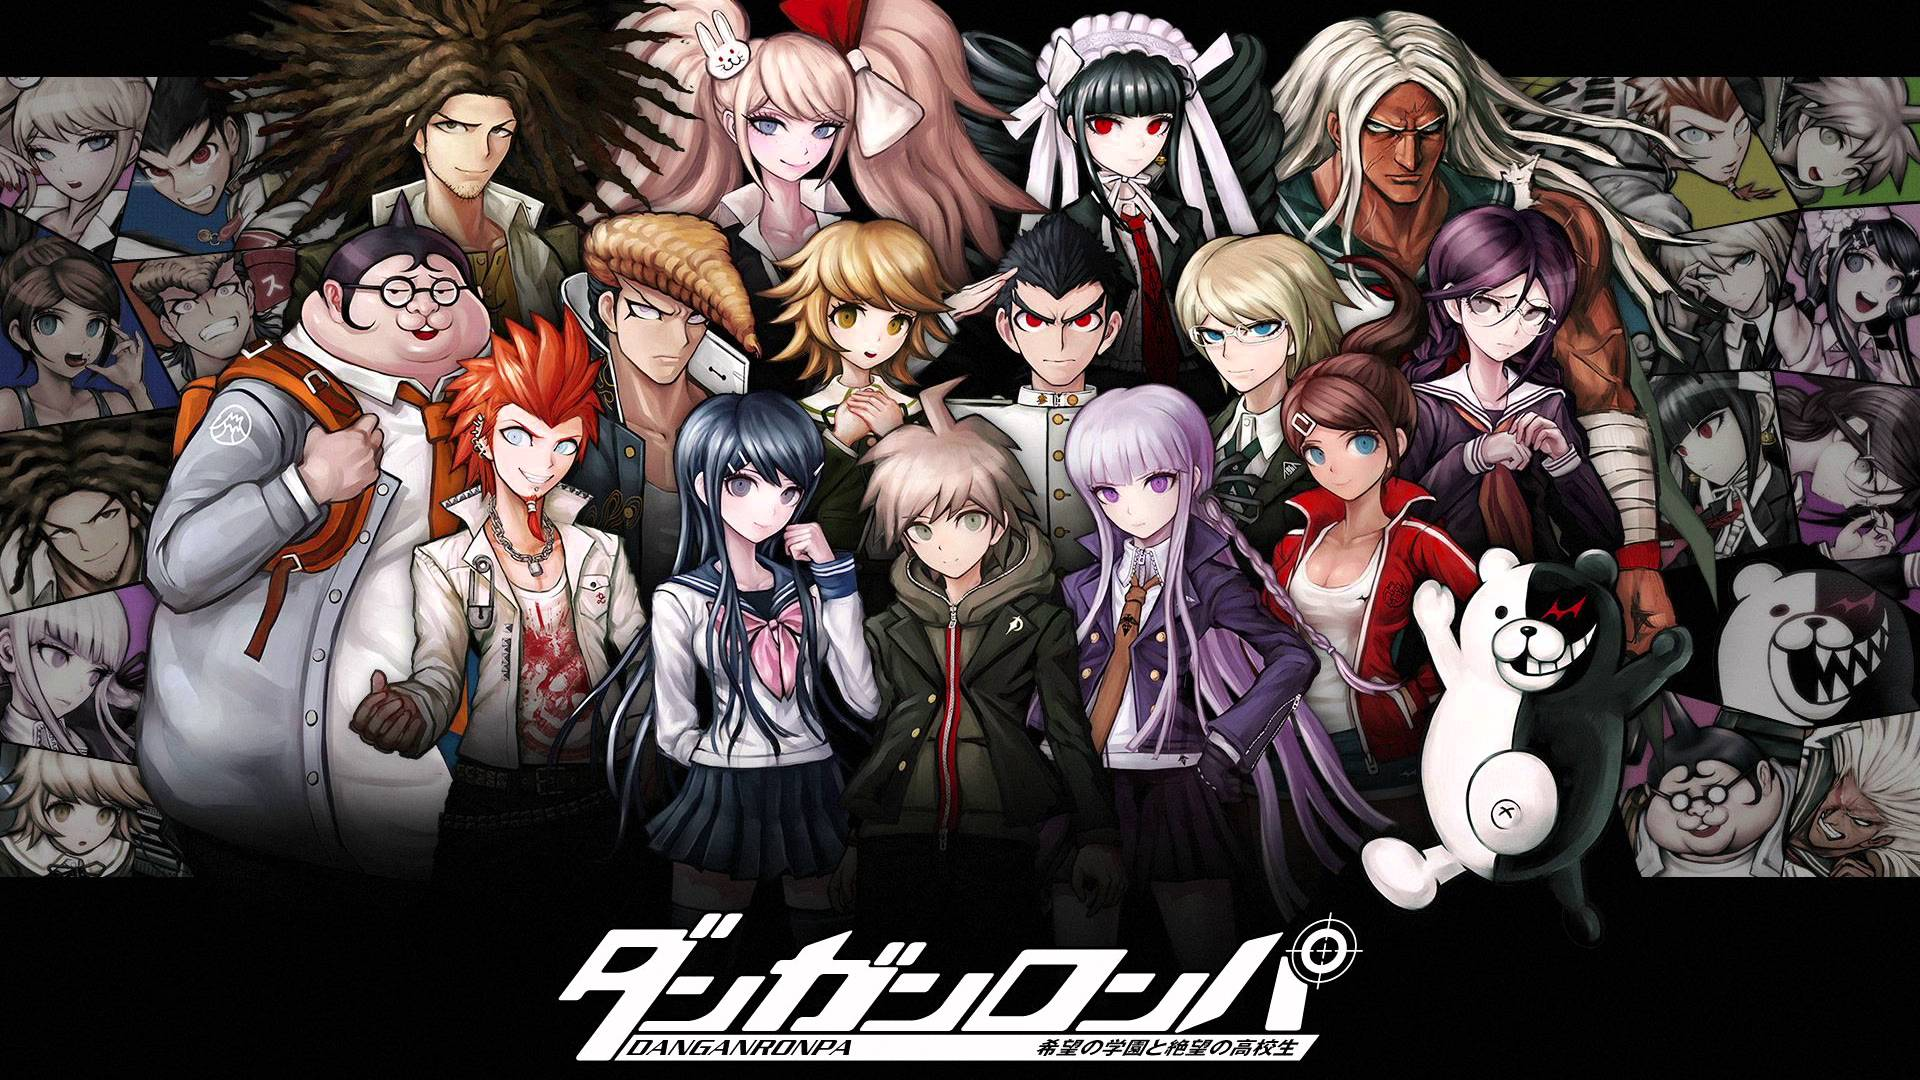 Danganronpa: Trigger Happy Havoc Desktop wallpapers